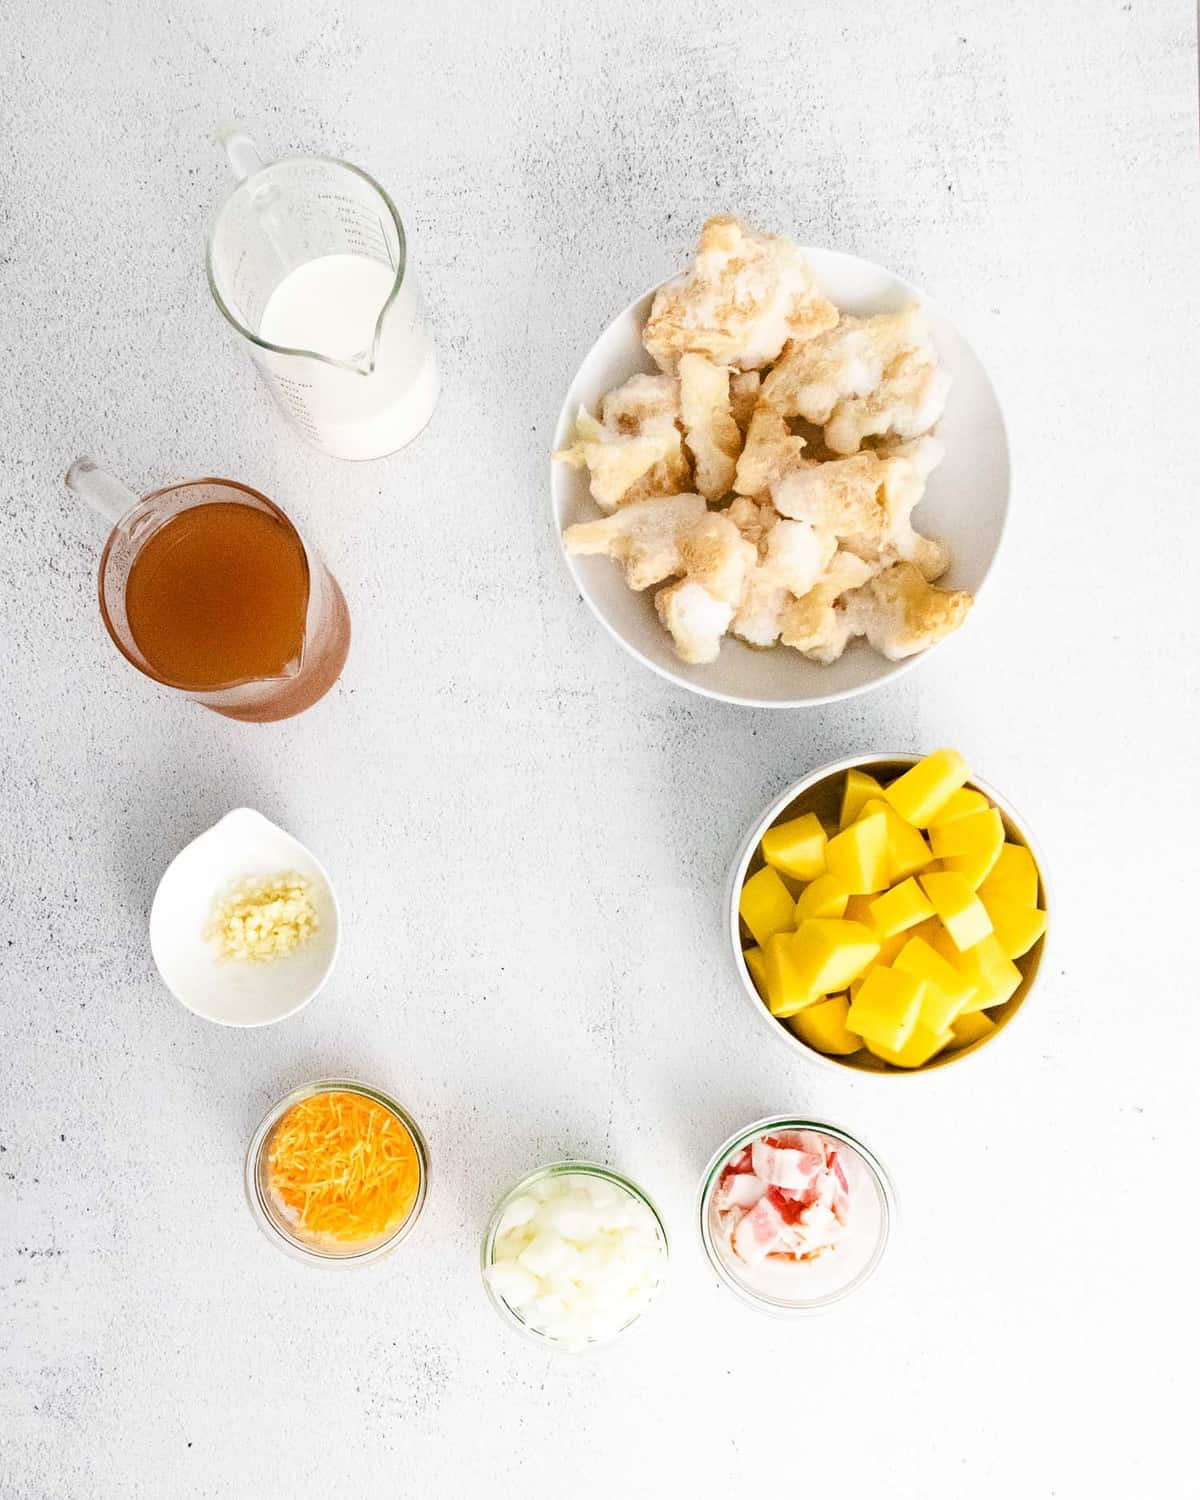 Overhead view of ingredients in bowls: potato, cauliflower, broth, milk, cheese, bacon.